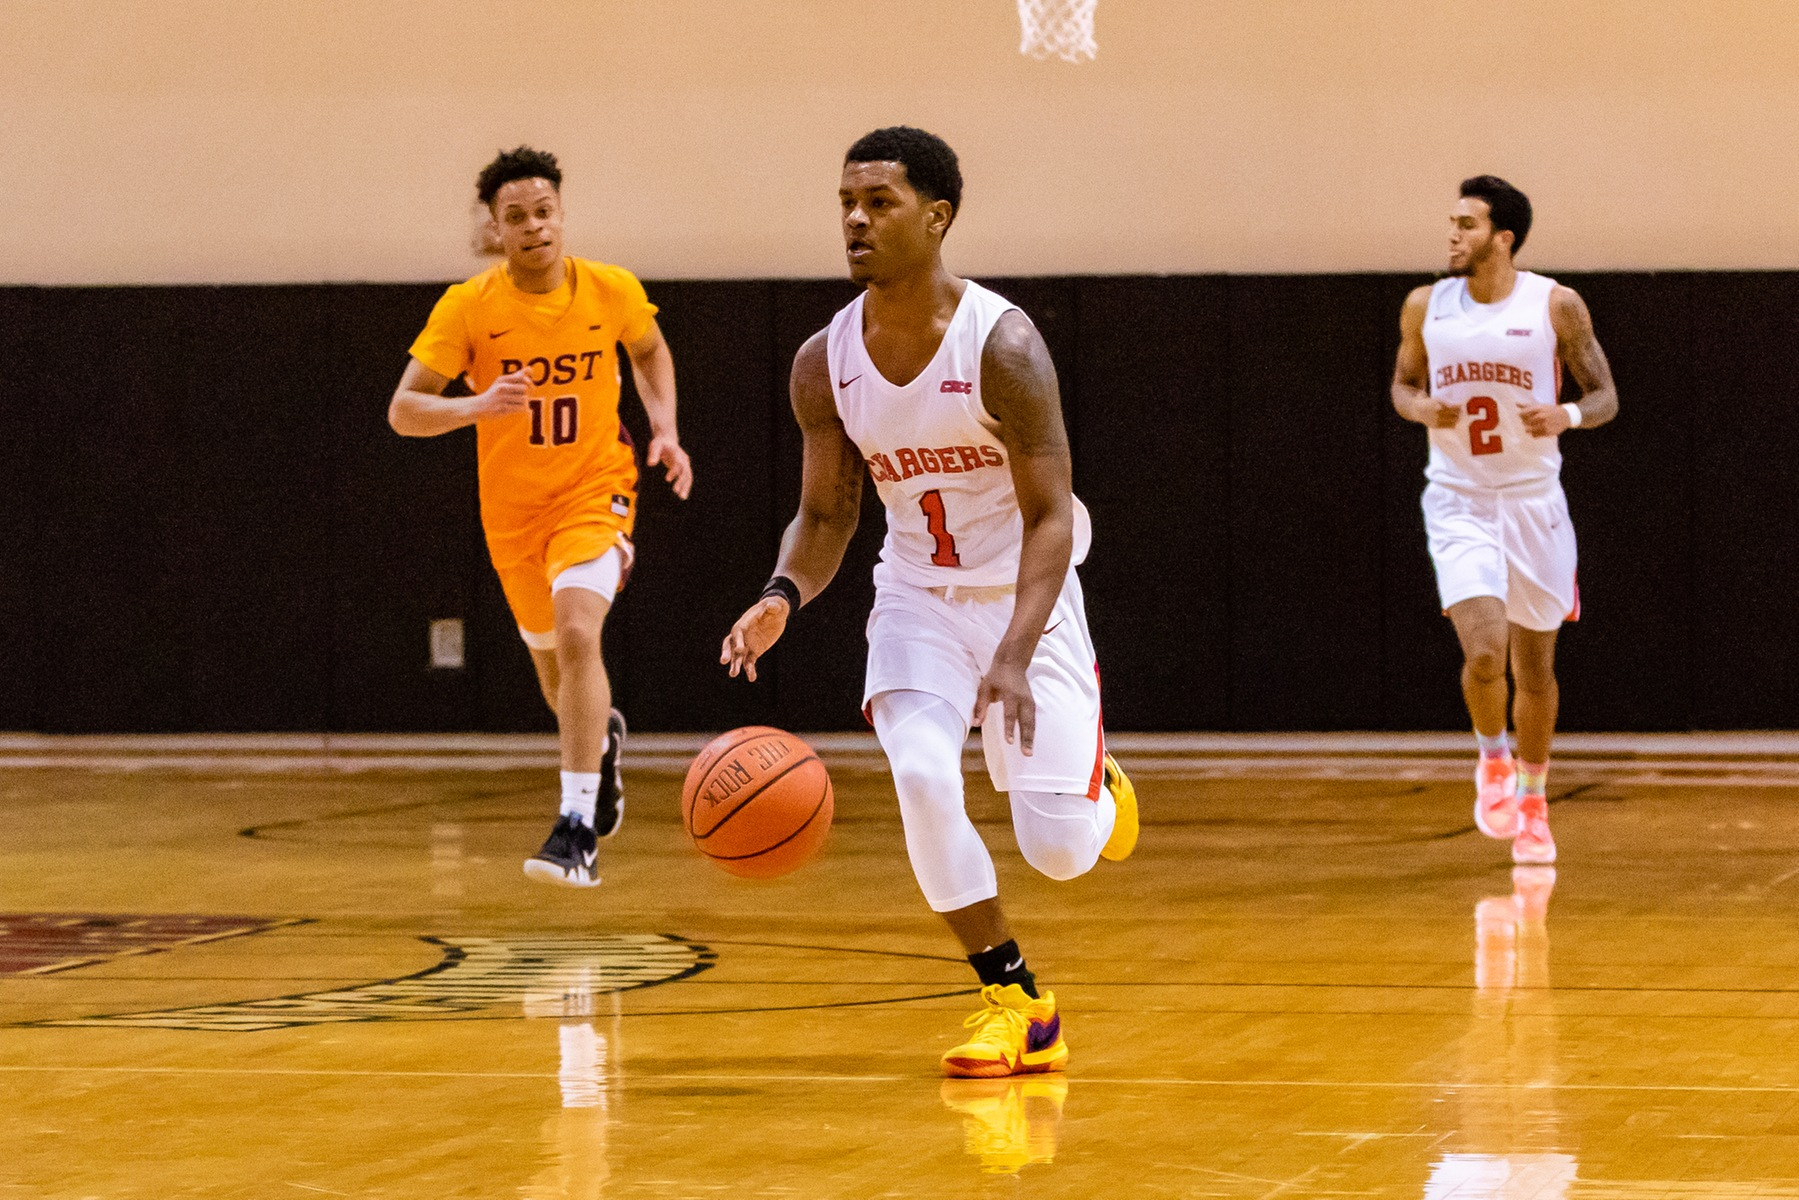 MEN'S BASKETBALL EDGED BY NEW HAVEN